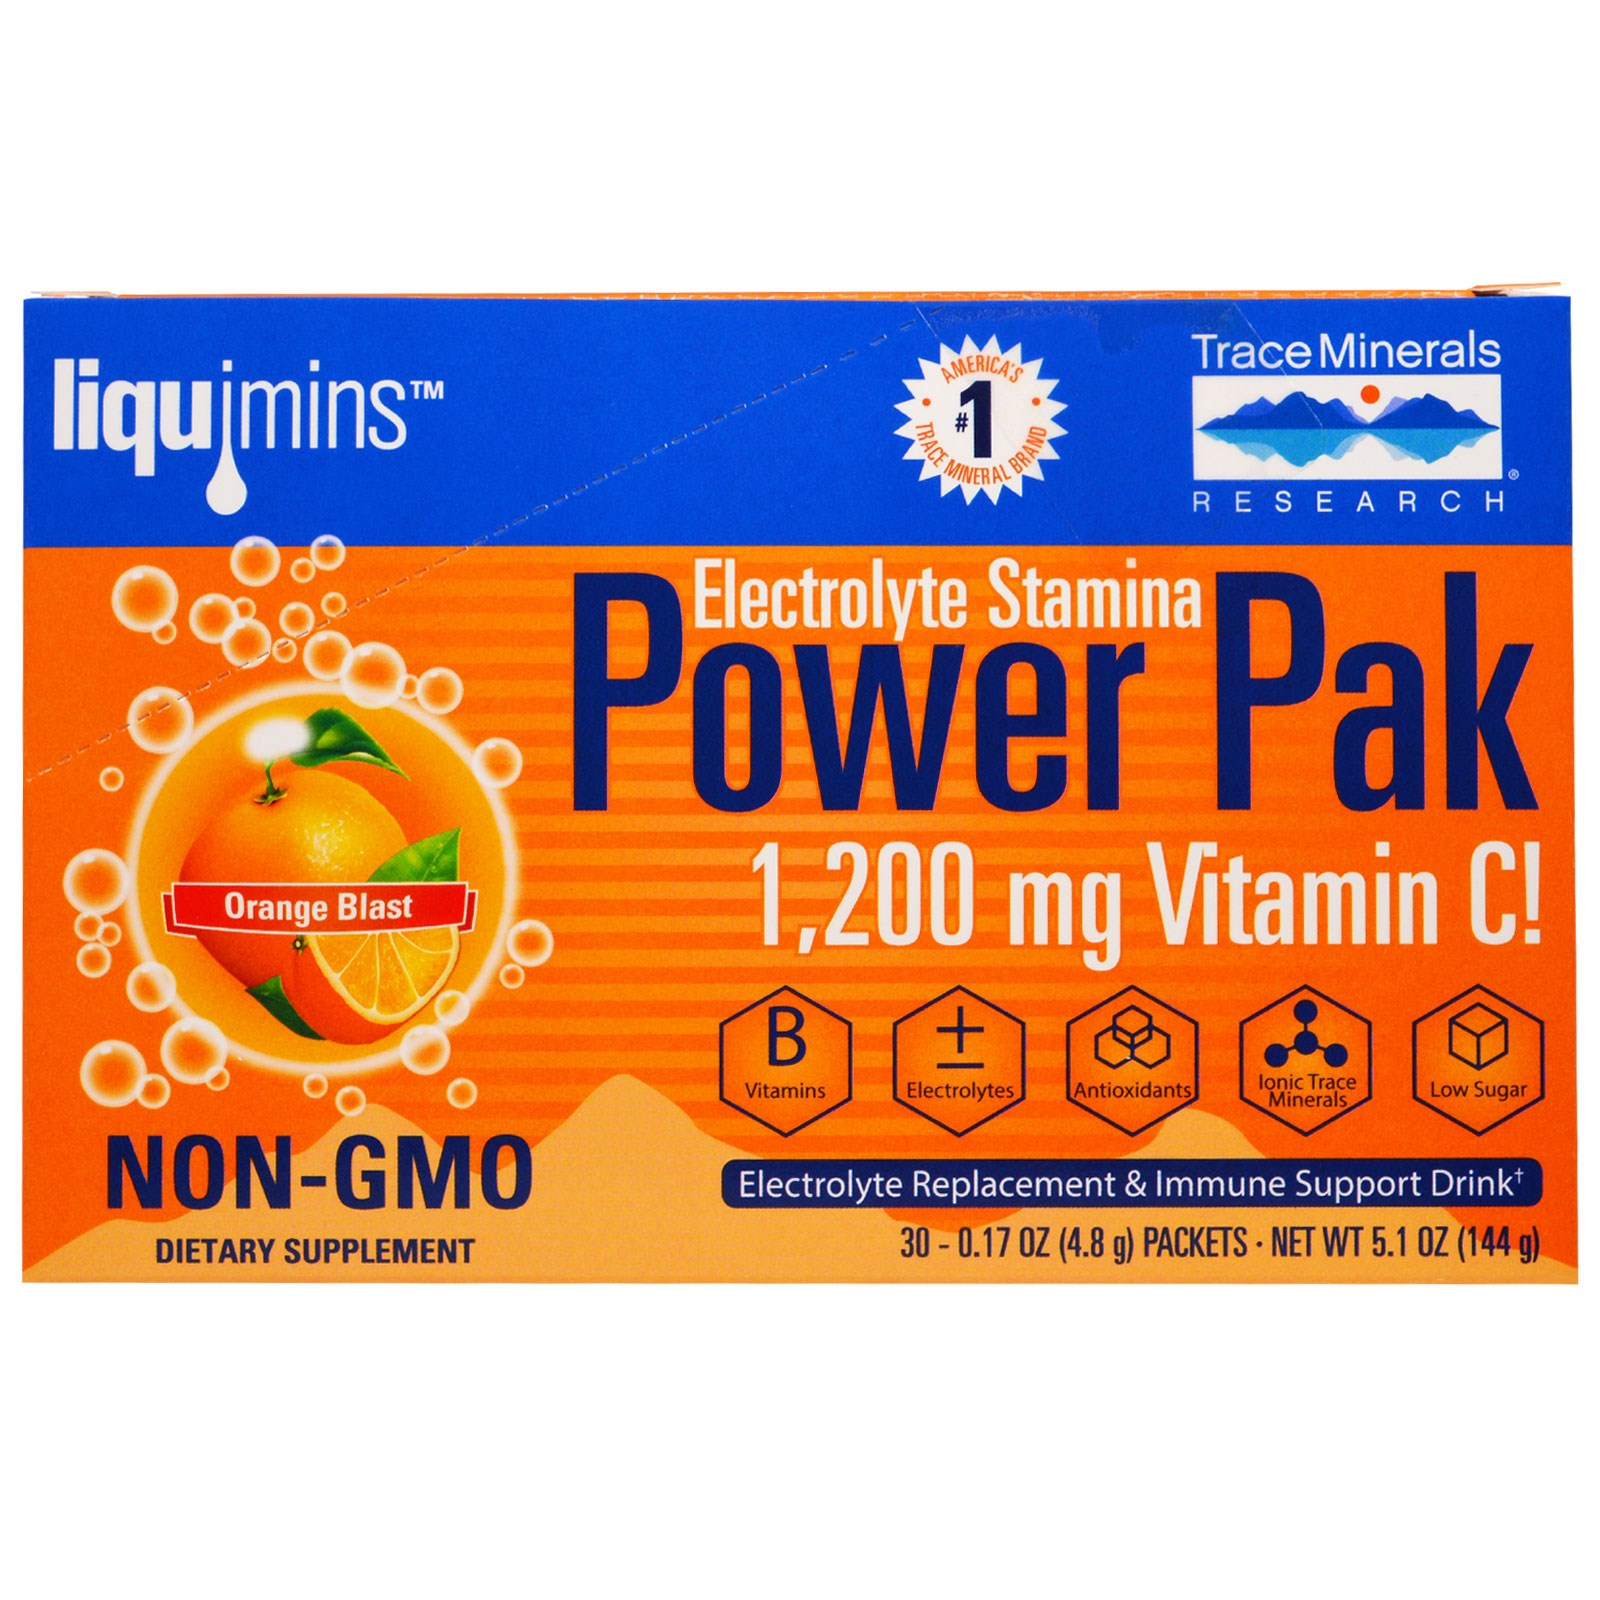 Electrolyte Stamina, Power Pak, Orange Blast (30 Packets, 4.8 g Each) Trace Minerals Research